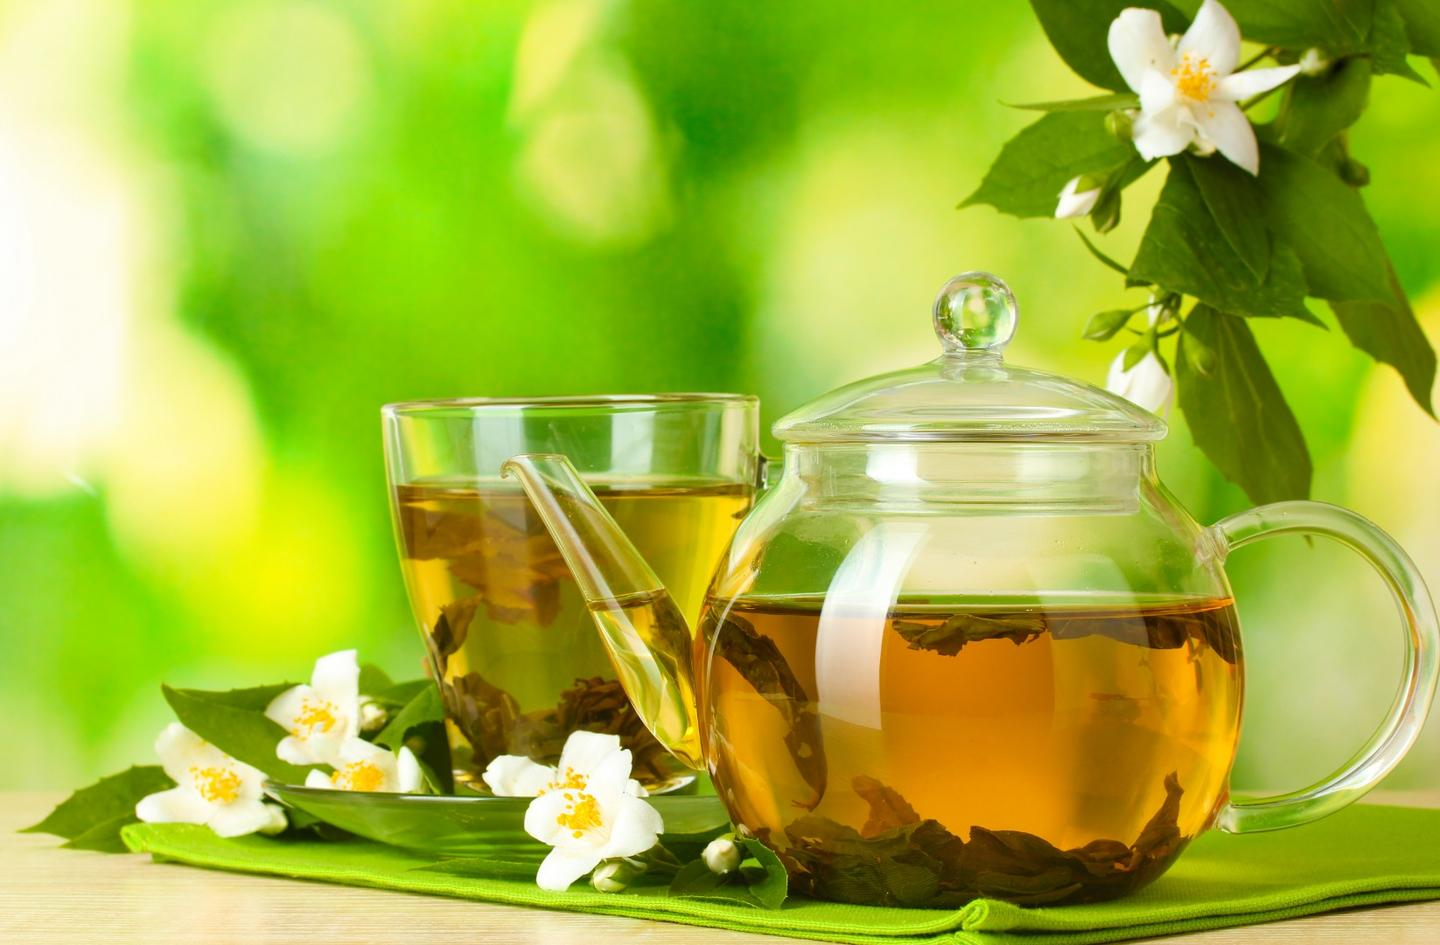 New research has uncovered evidence green tea consumption can prevent obesity in mice